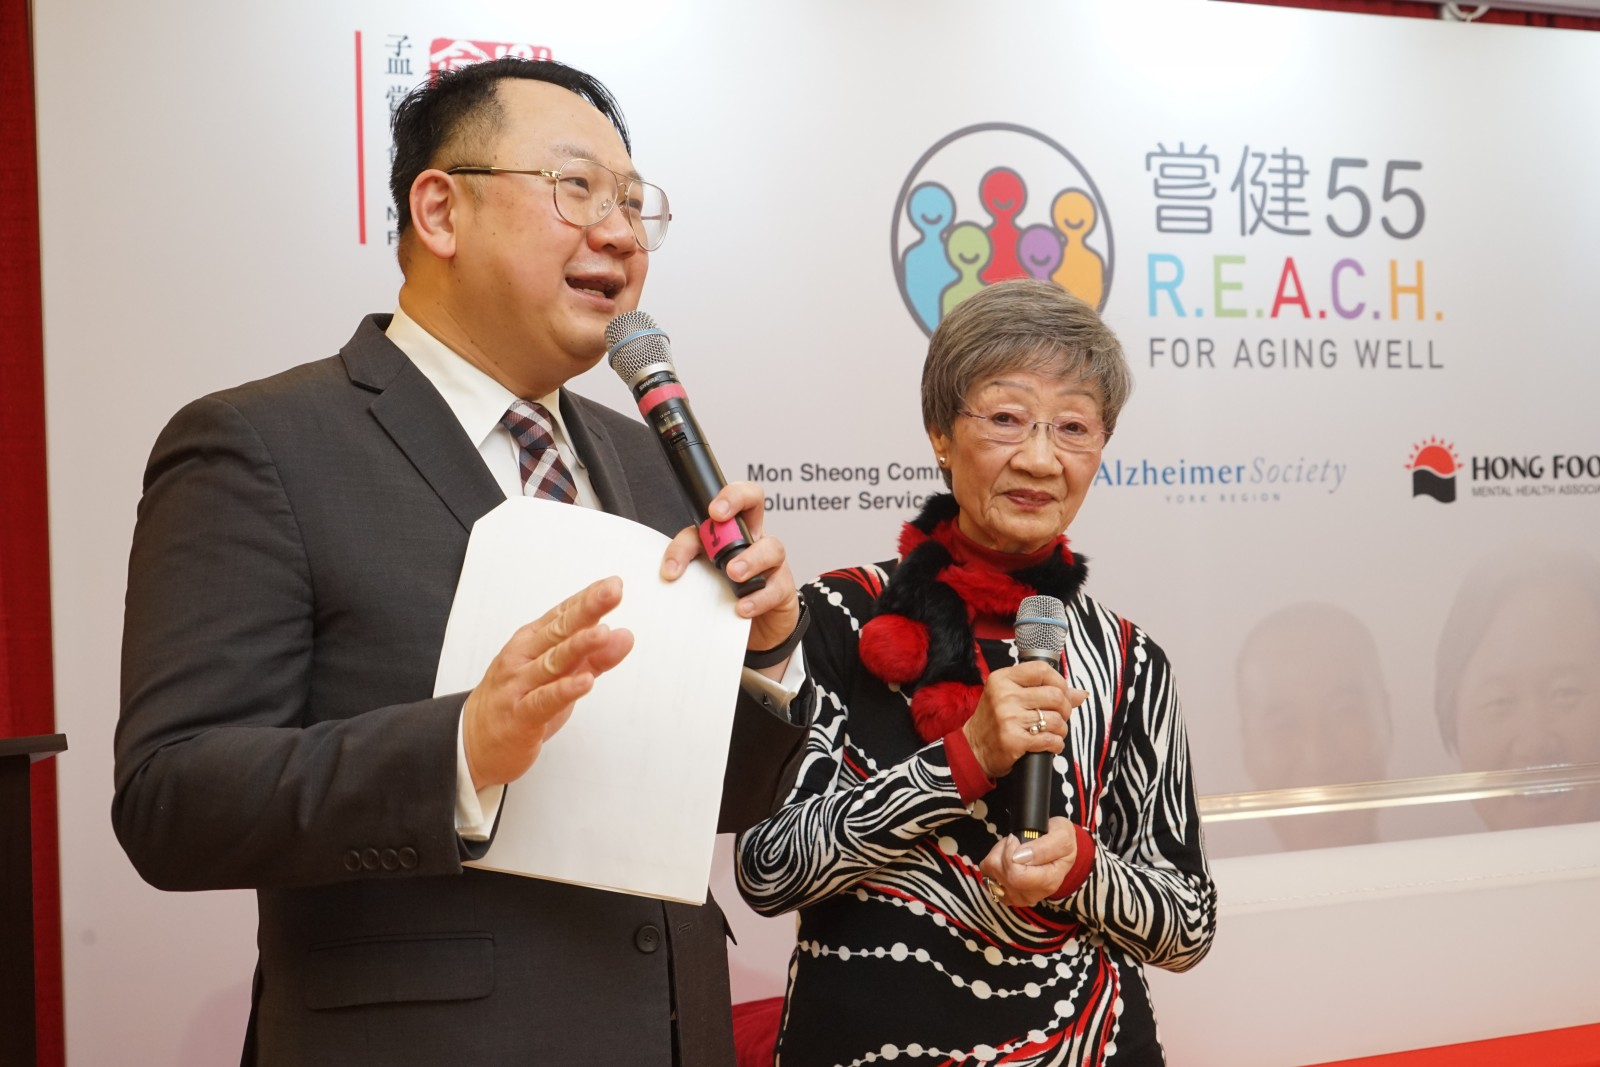 88-year-old Penny Chong is invited to share her volunteering experience